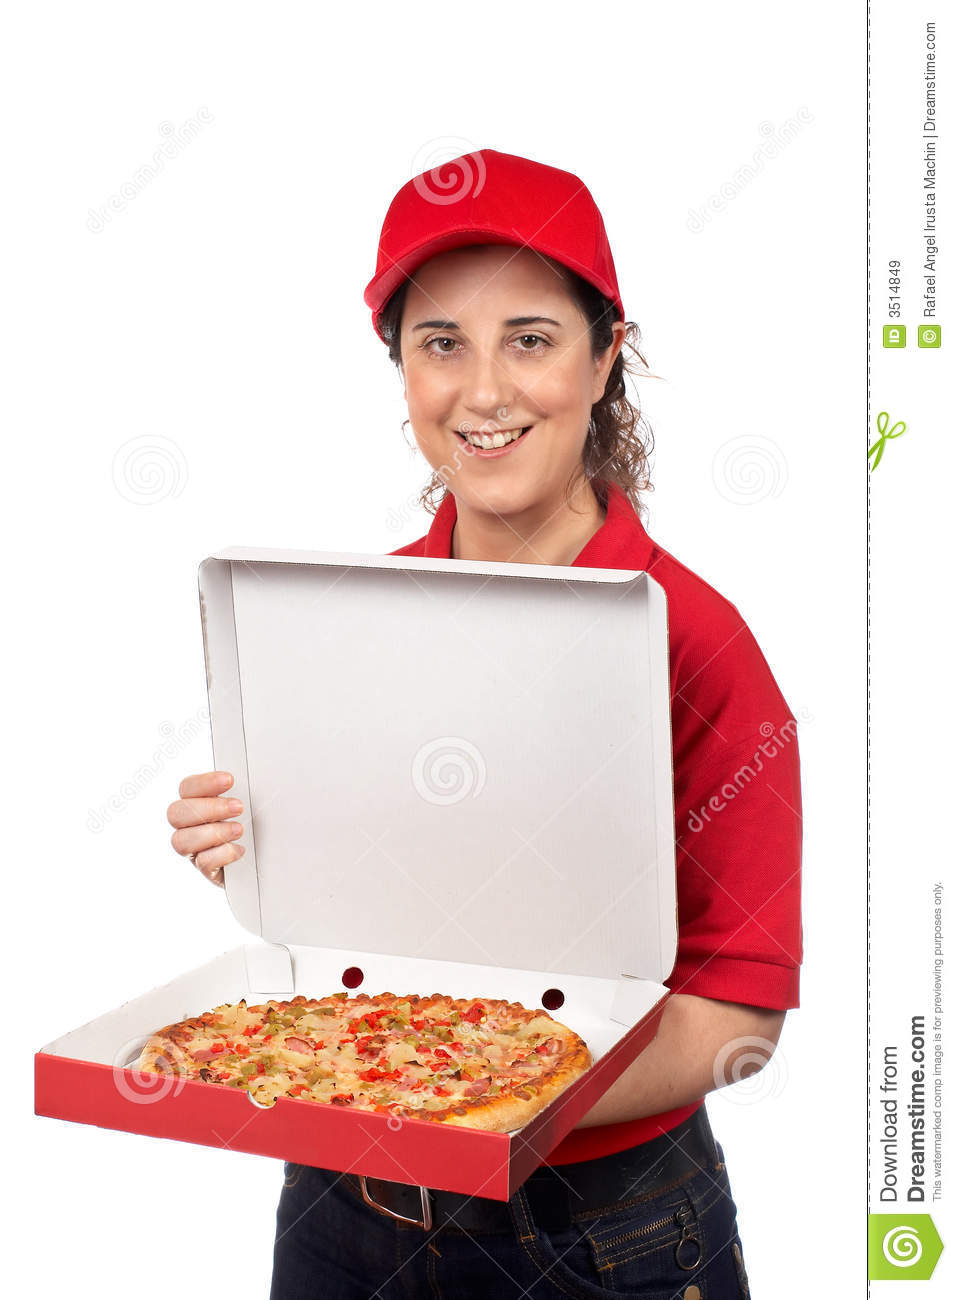 how to carry pizza home